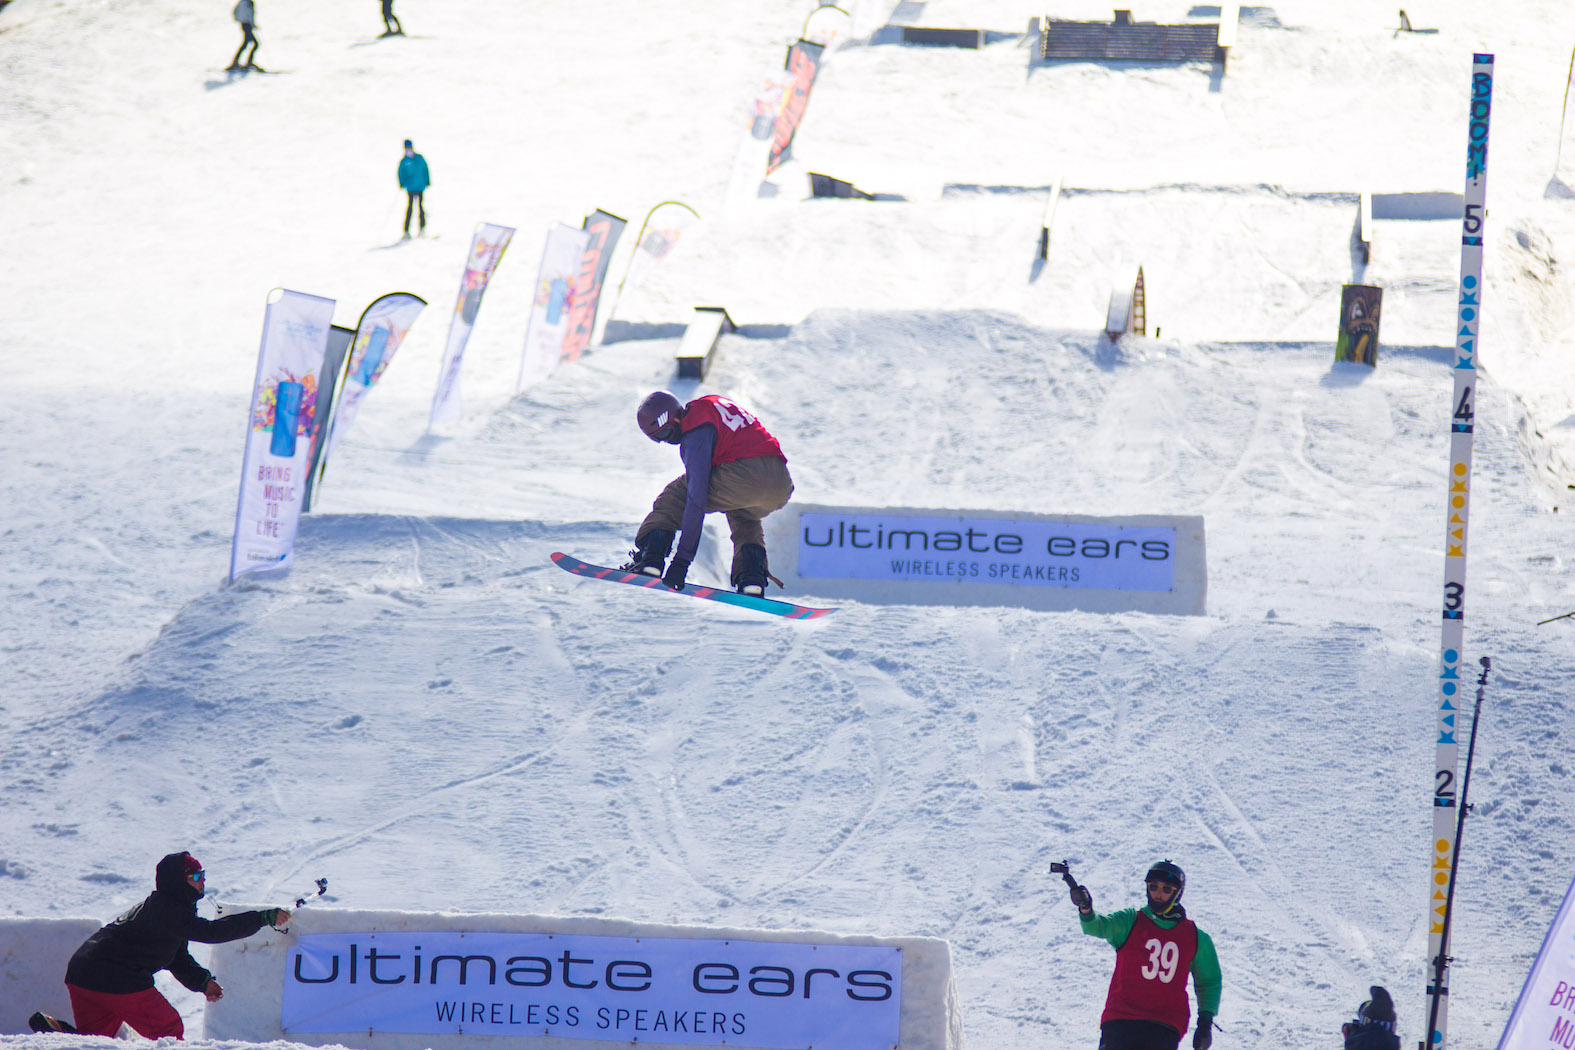 Liam Roy snowboarding his way to victory at the 2017 Ultimate Ears Winter Whip